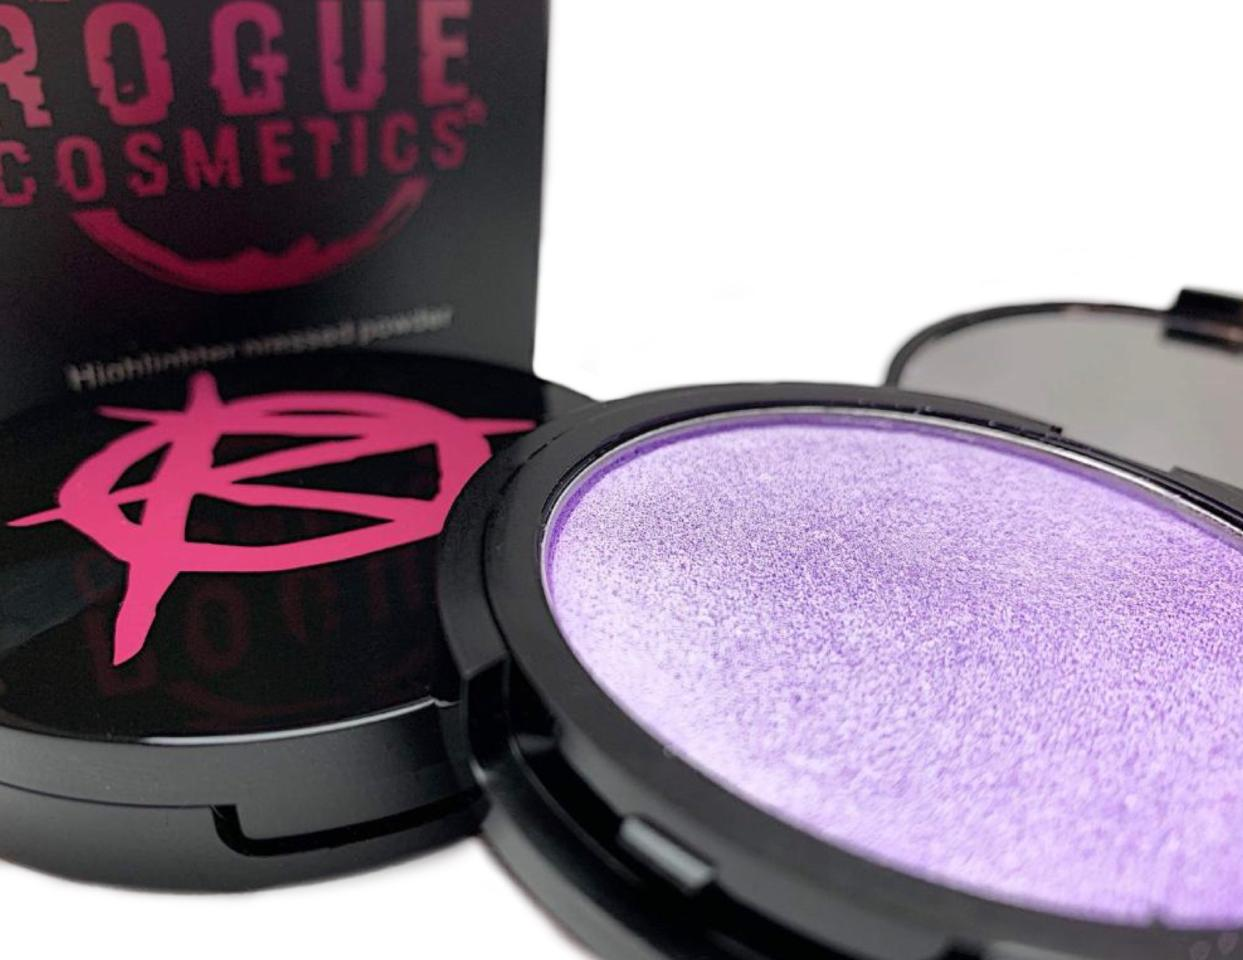 Extra Pressed Highlighter - Rogue Cosmetics